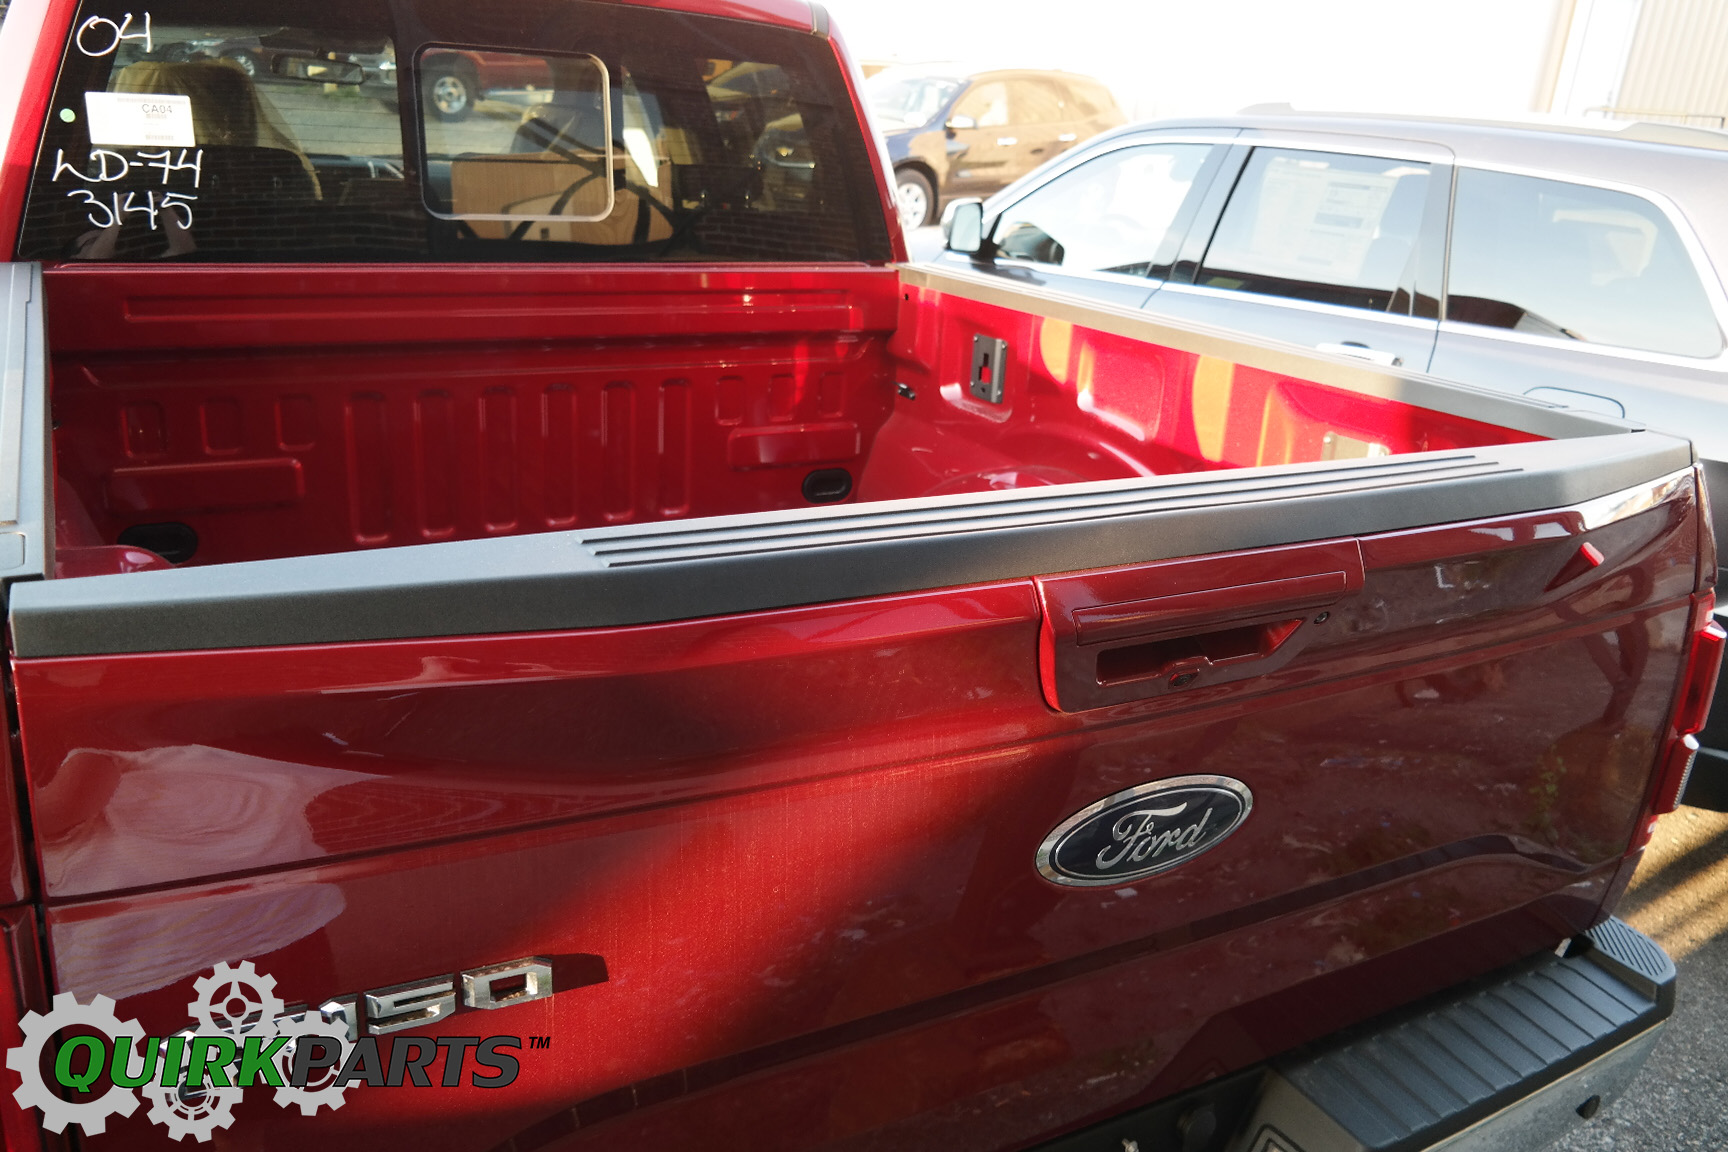 2015 16 ford f150 black top center tailgate molding cover cap oem fl3z9941018aa fits ford f 150 - 2015 Ford F 150 King Ranch Tailgate